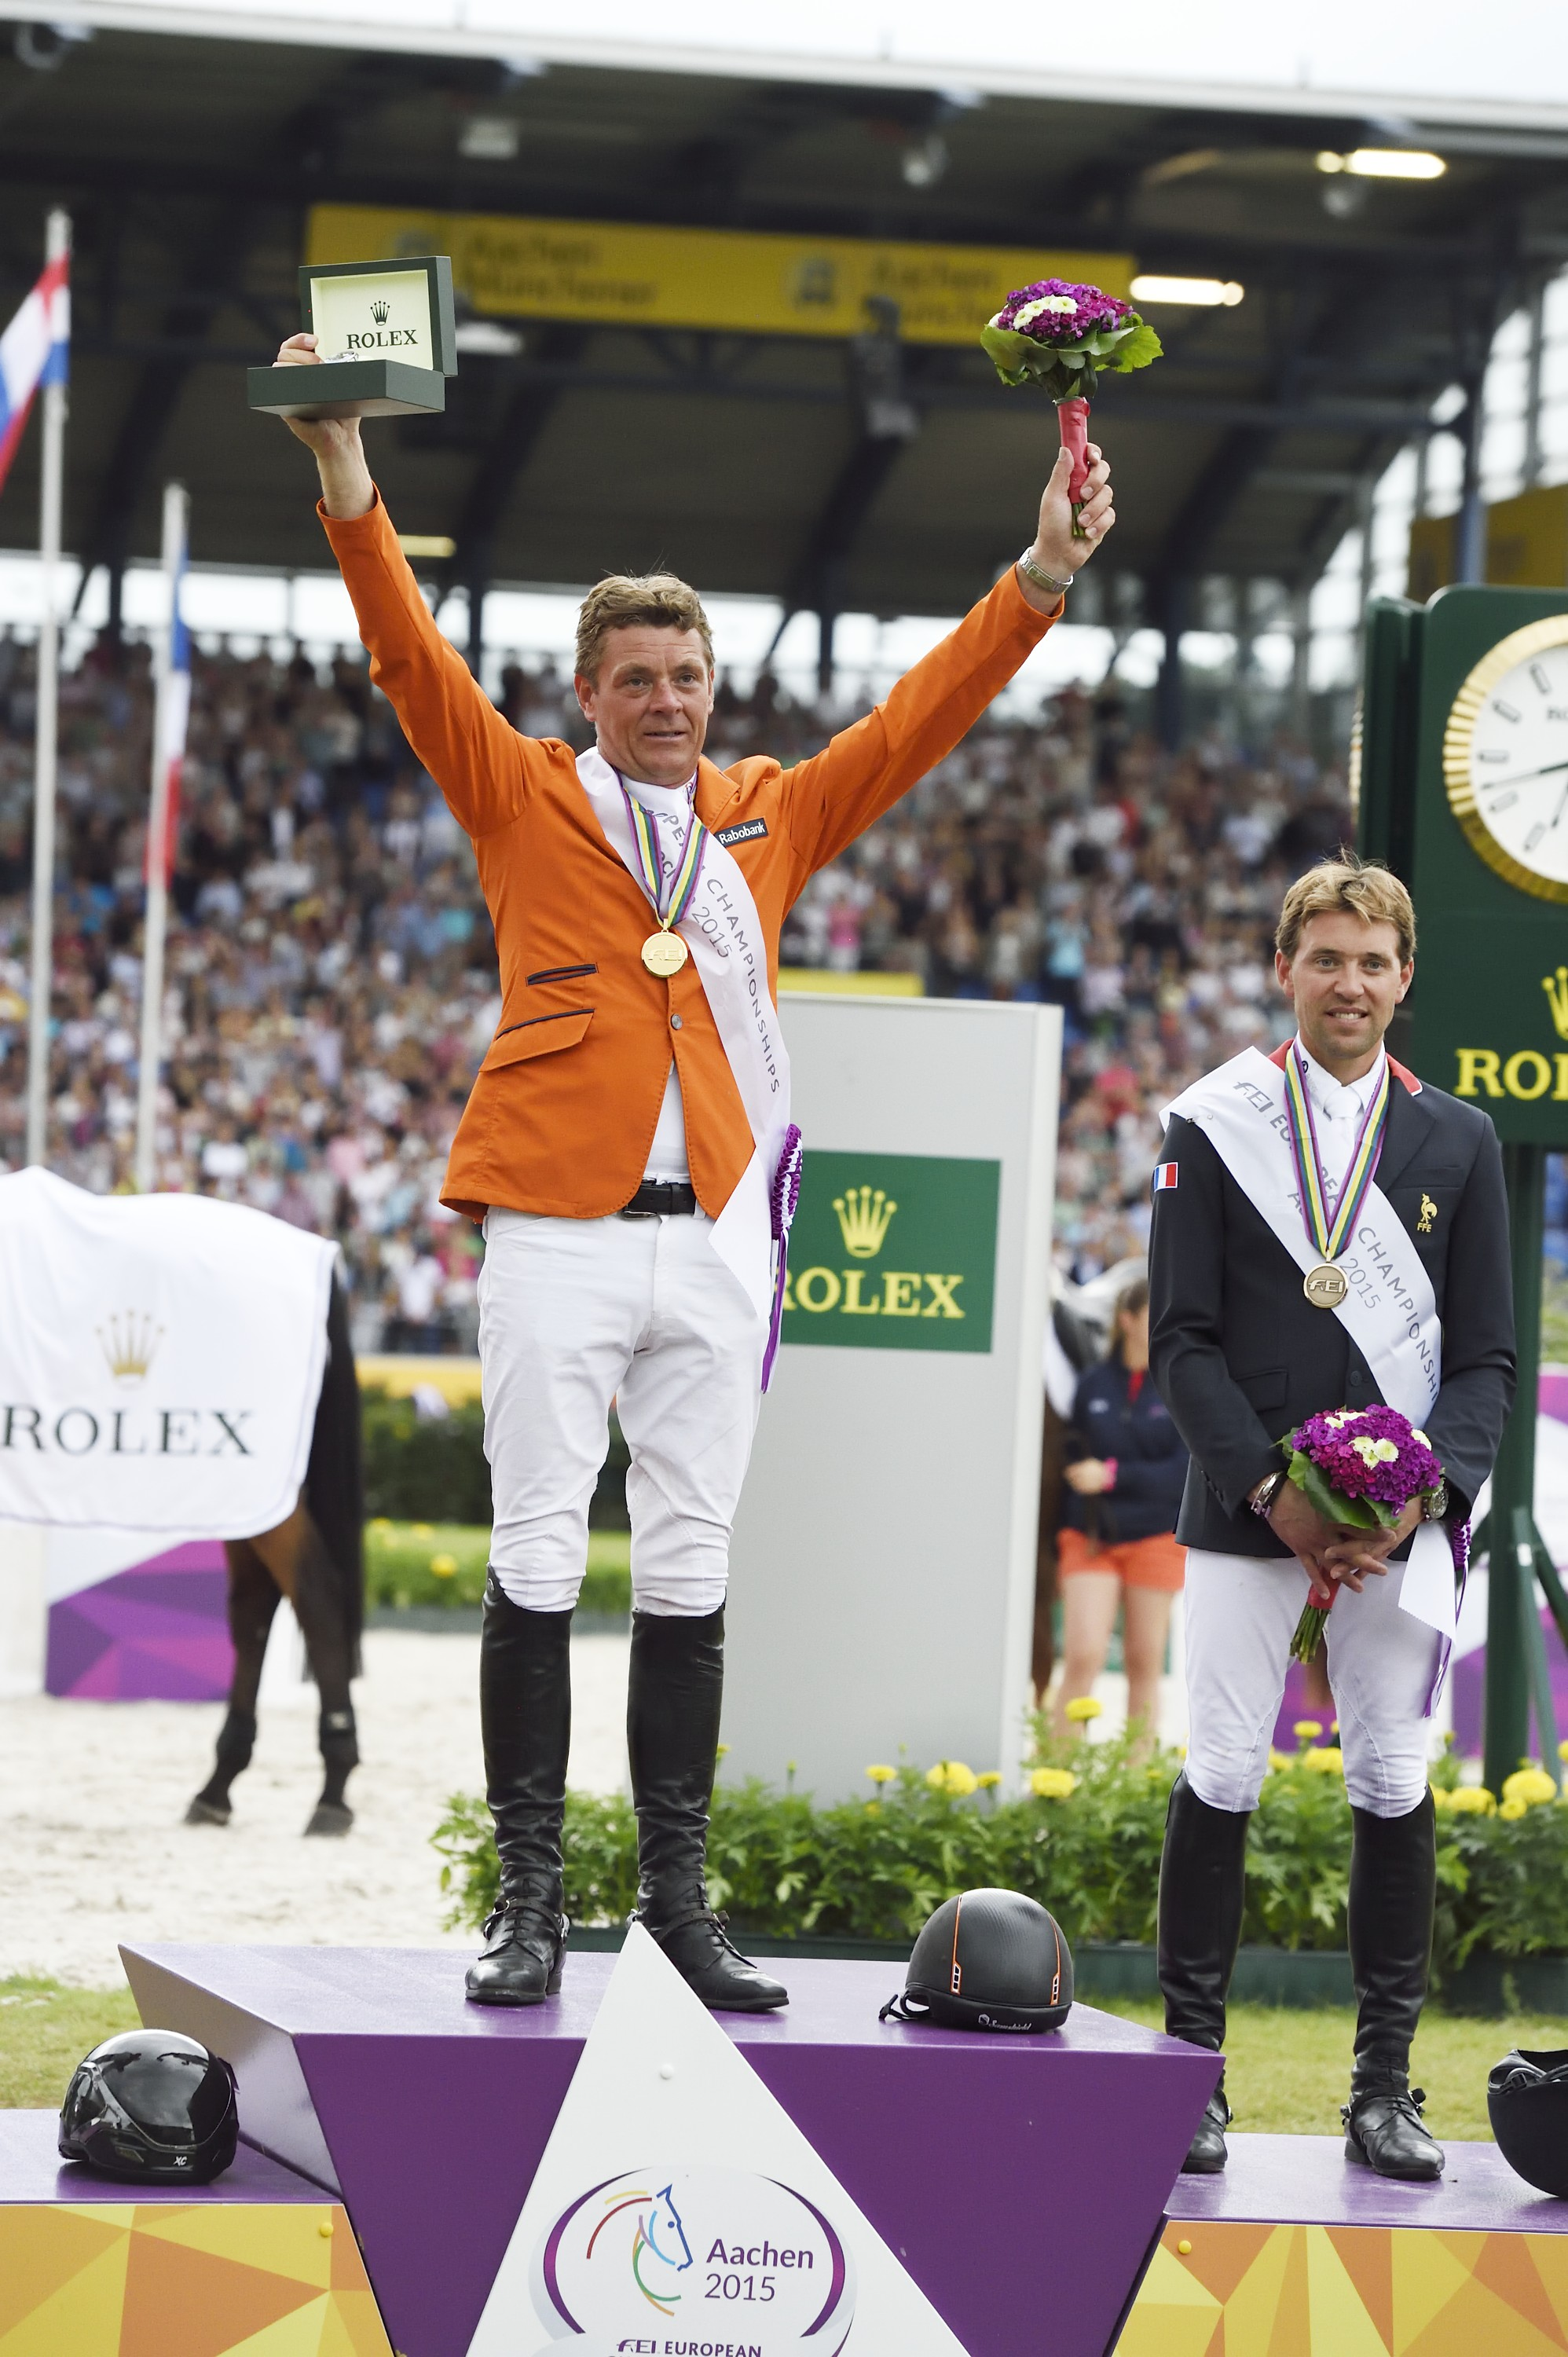 Horse Times Egypt: Equestrian Magazine :Event News :JEROEN DUBBELDAM WINS GOLD AT THE FEI EUROPEAN CHAMPIONSHIPS IN AACHEN. NOW HOLDS WORLD AND EUROPEAN TITLES CONCURRENTLY.